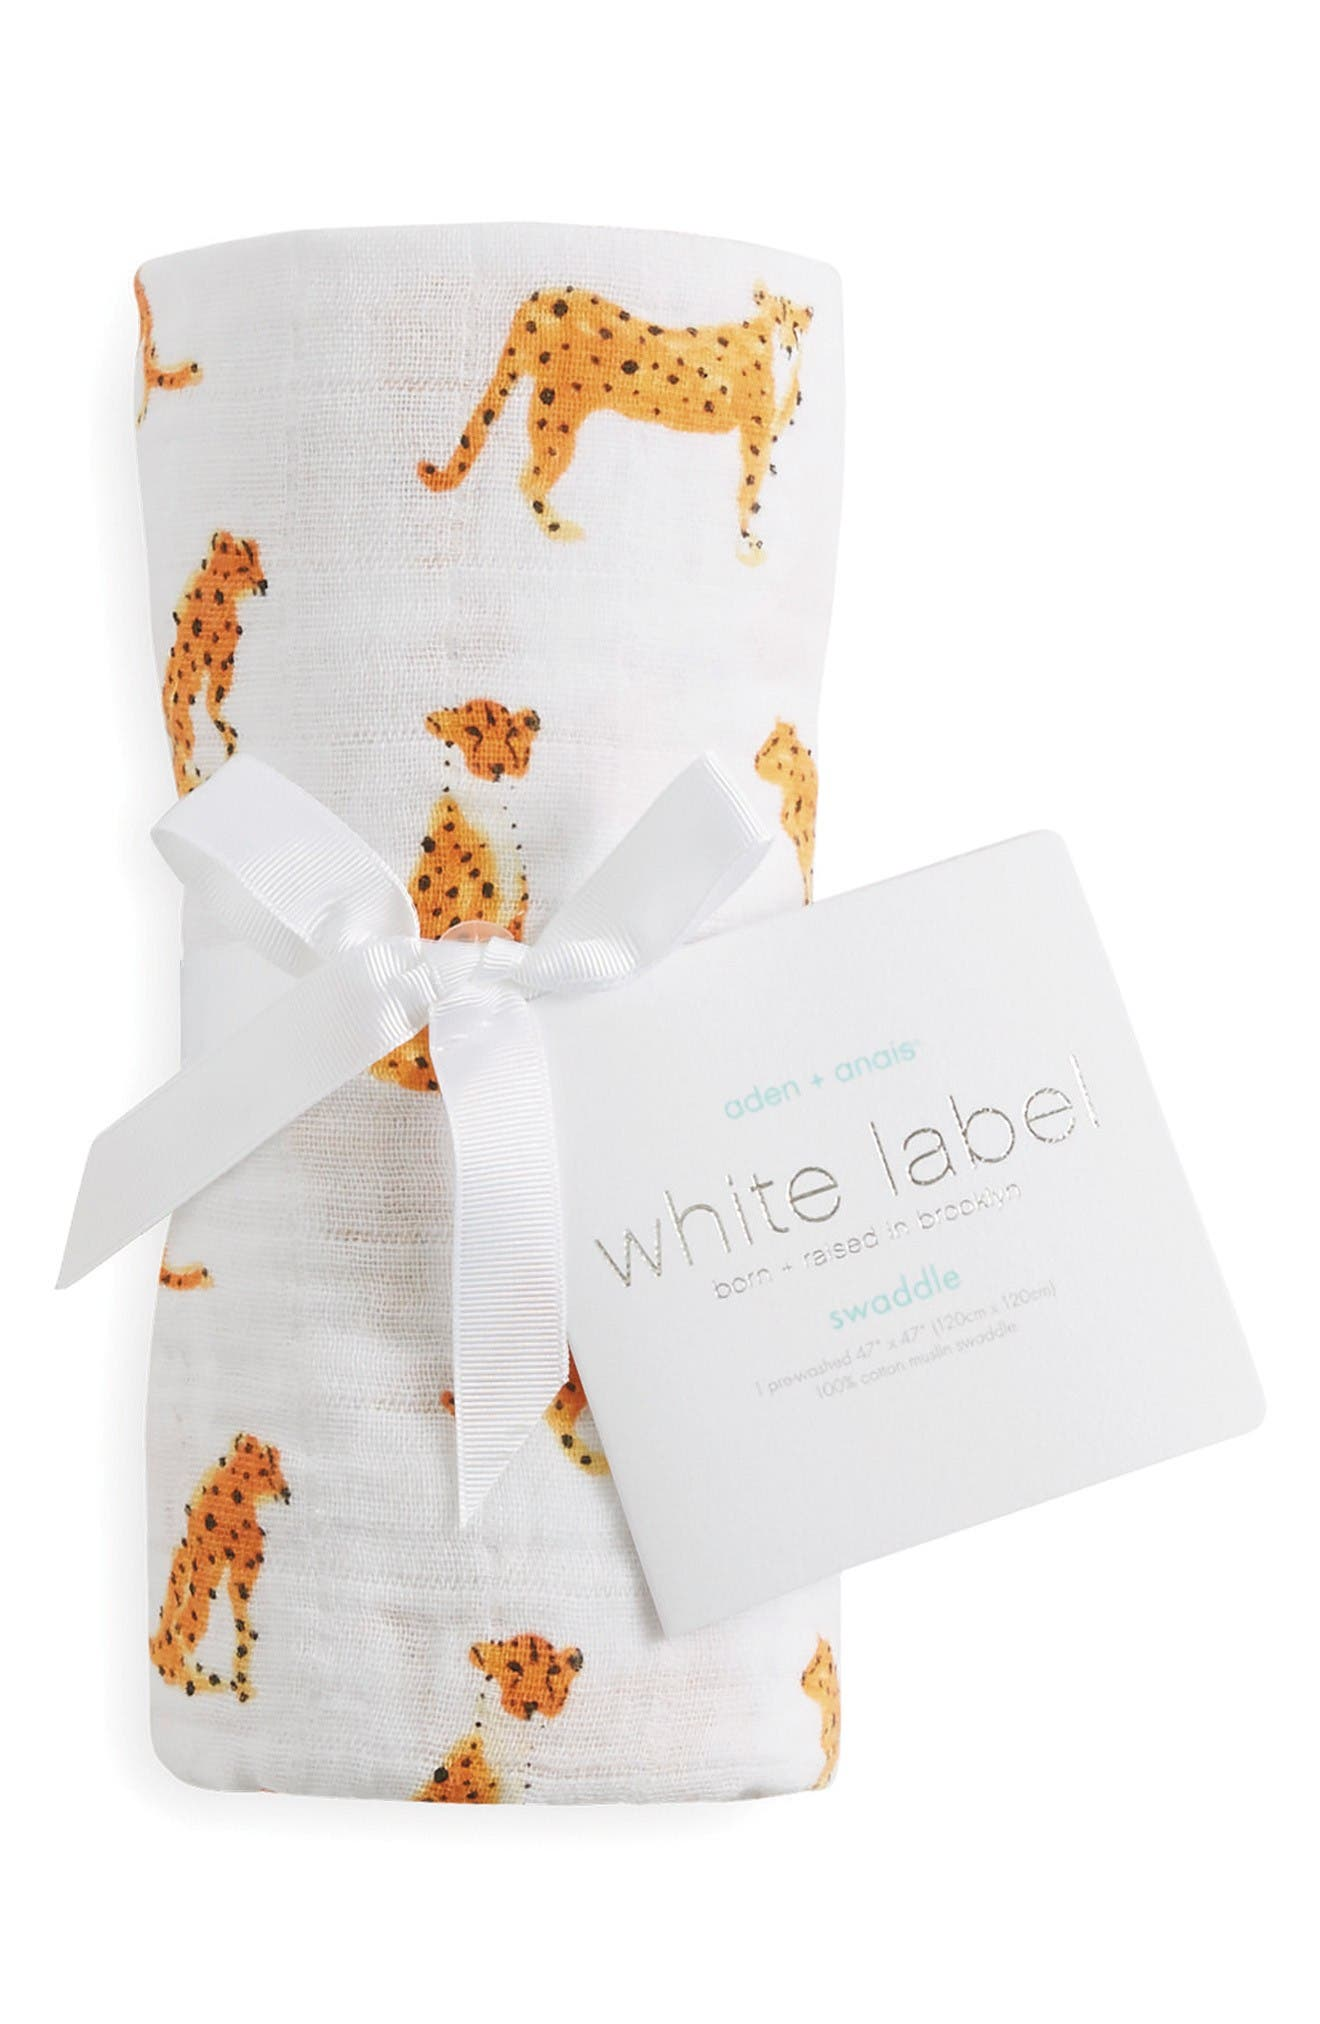 aden + anais White Label Classic Swaddling Cloth